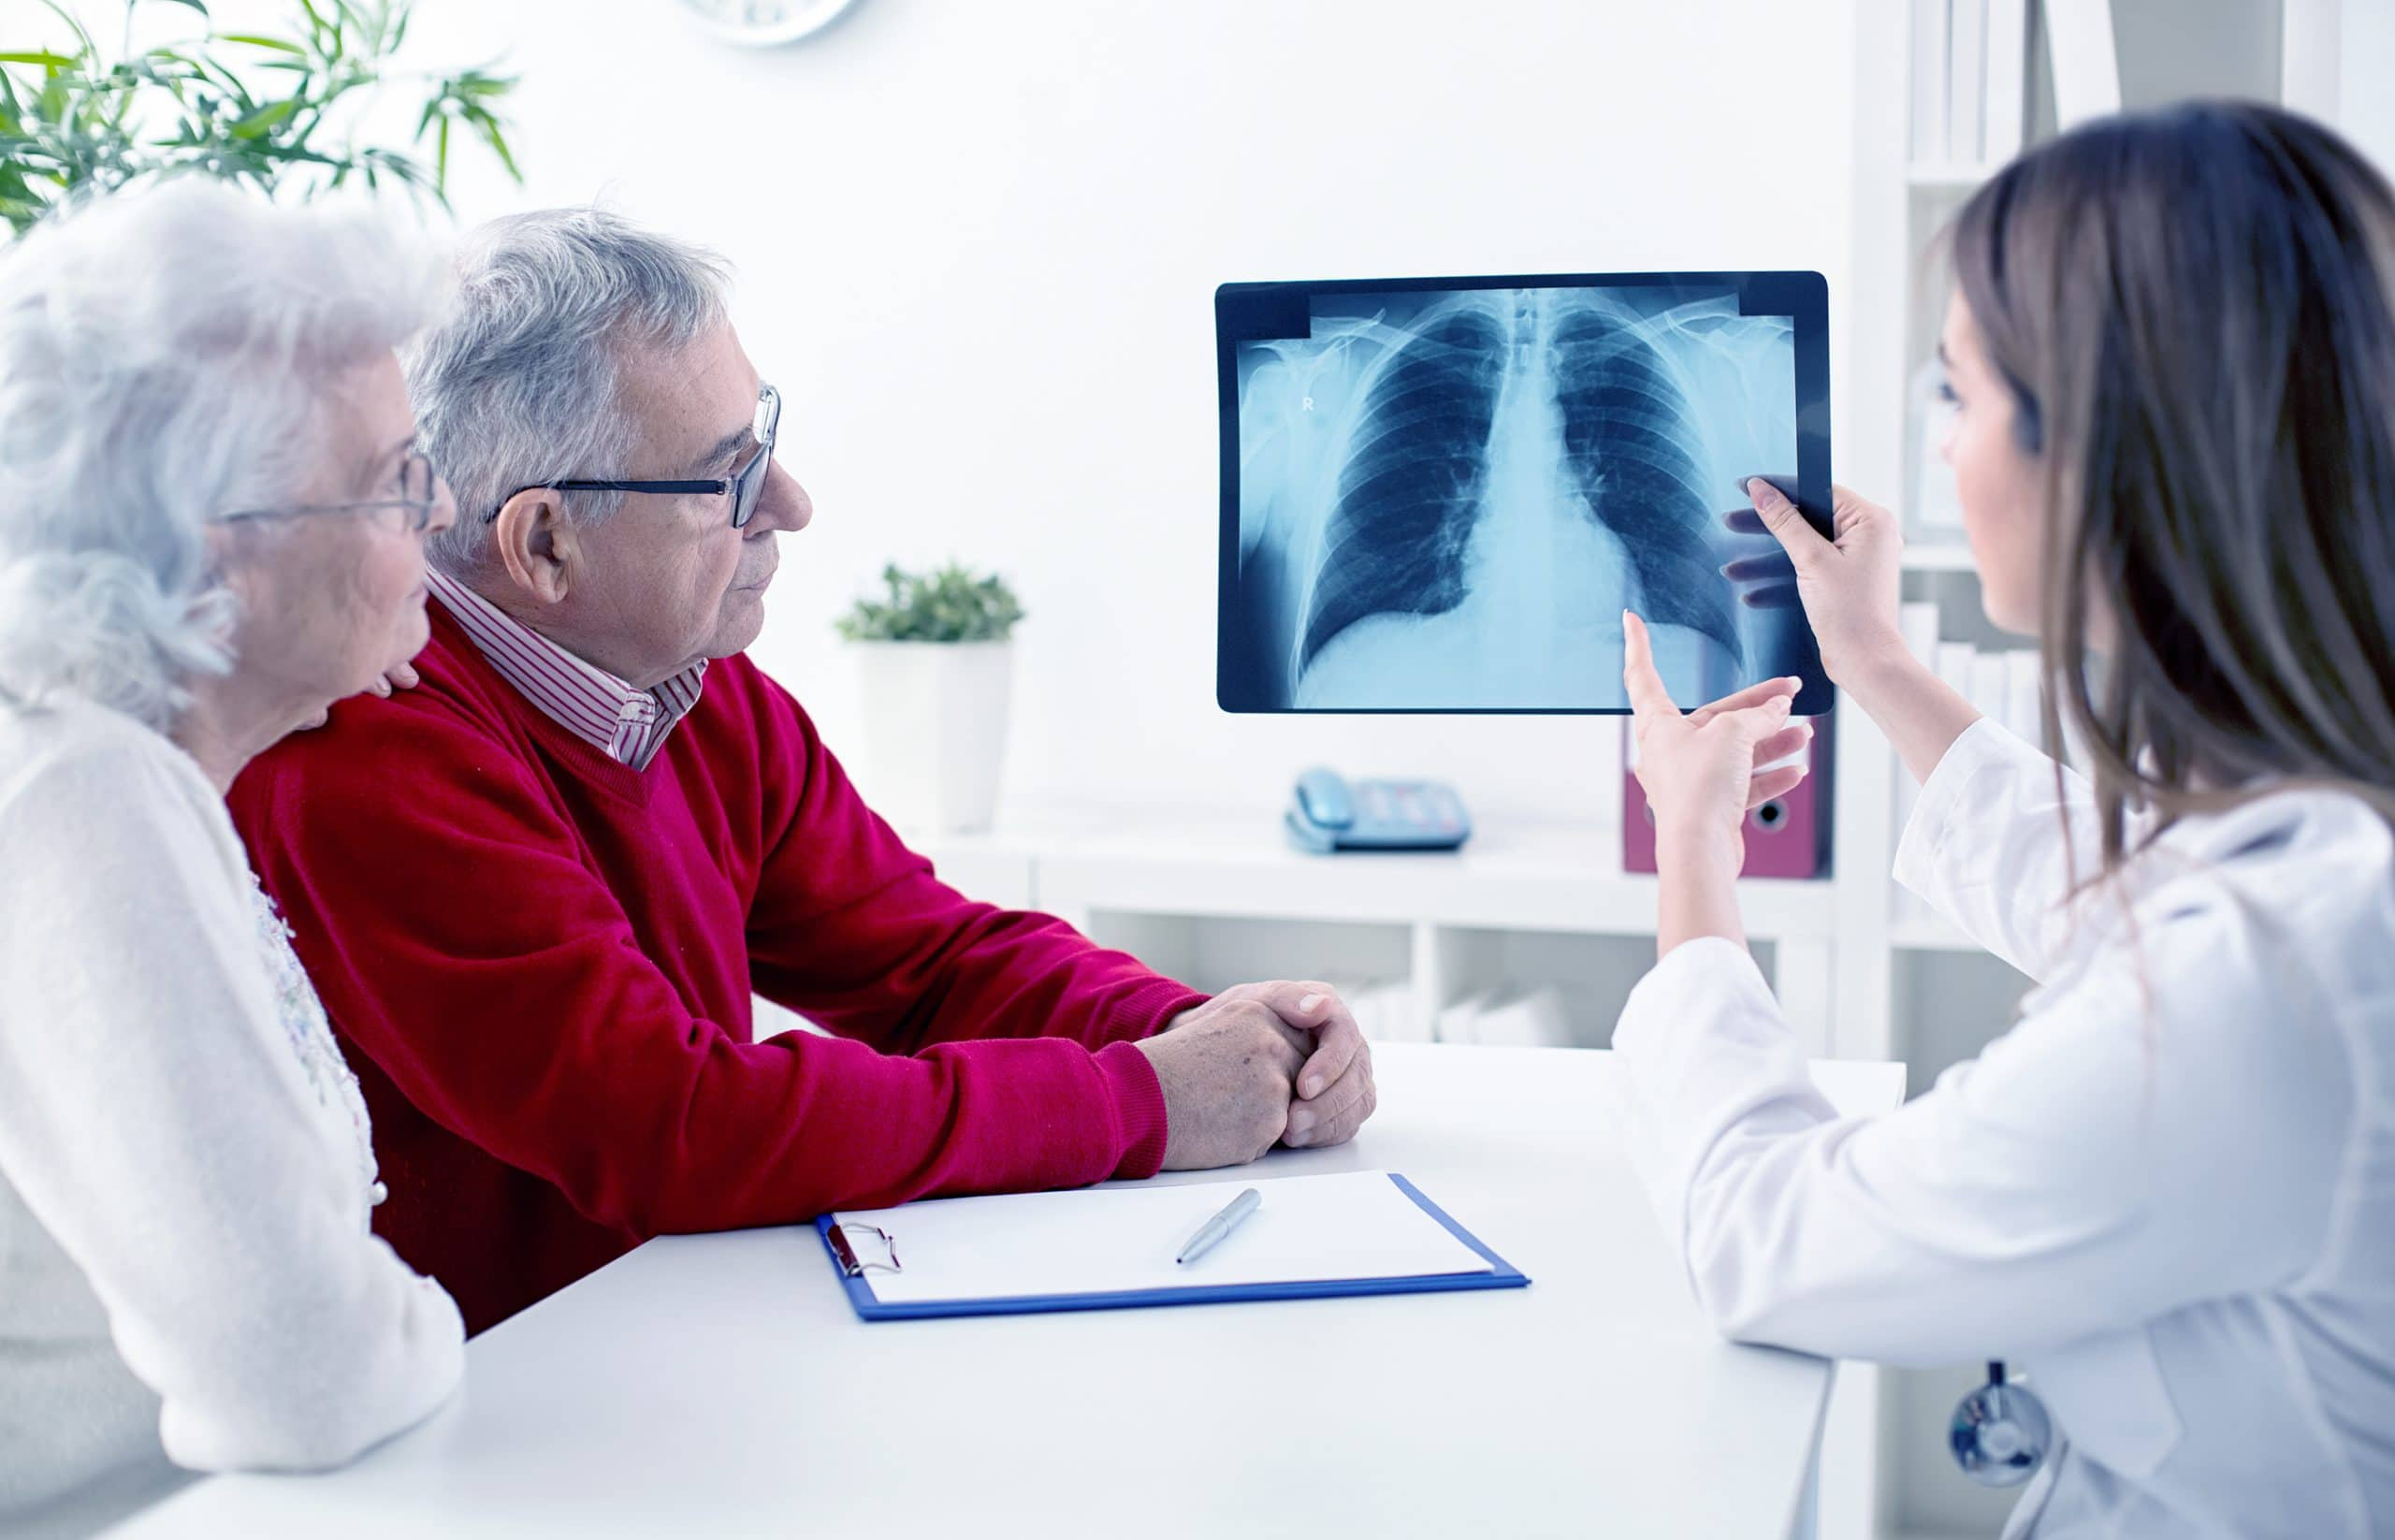 This is an image of a doctor diagnosing a patient with lung cancer via scan imagery.